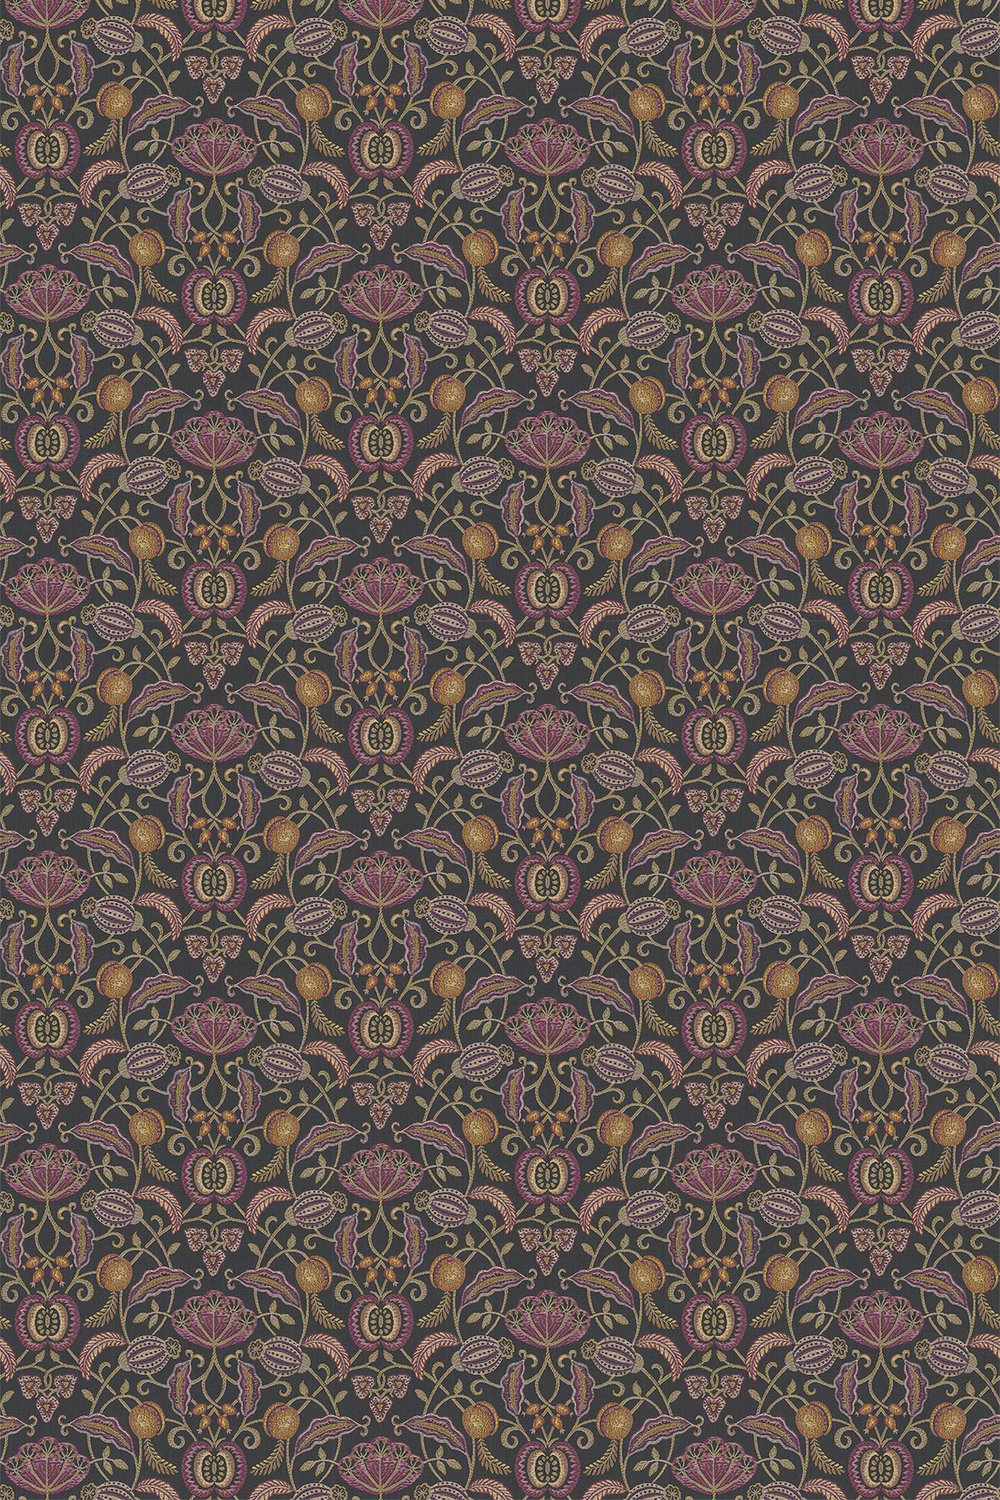 iliv Appleby Eden Fabric - Product code: EDAJ/APPLEEDE